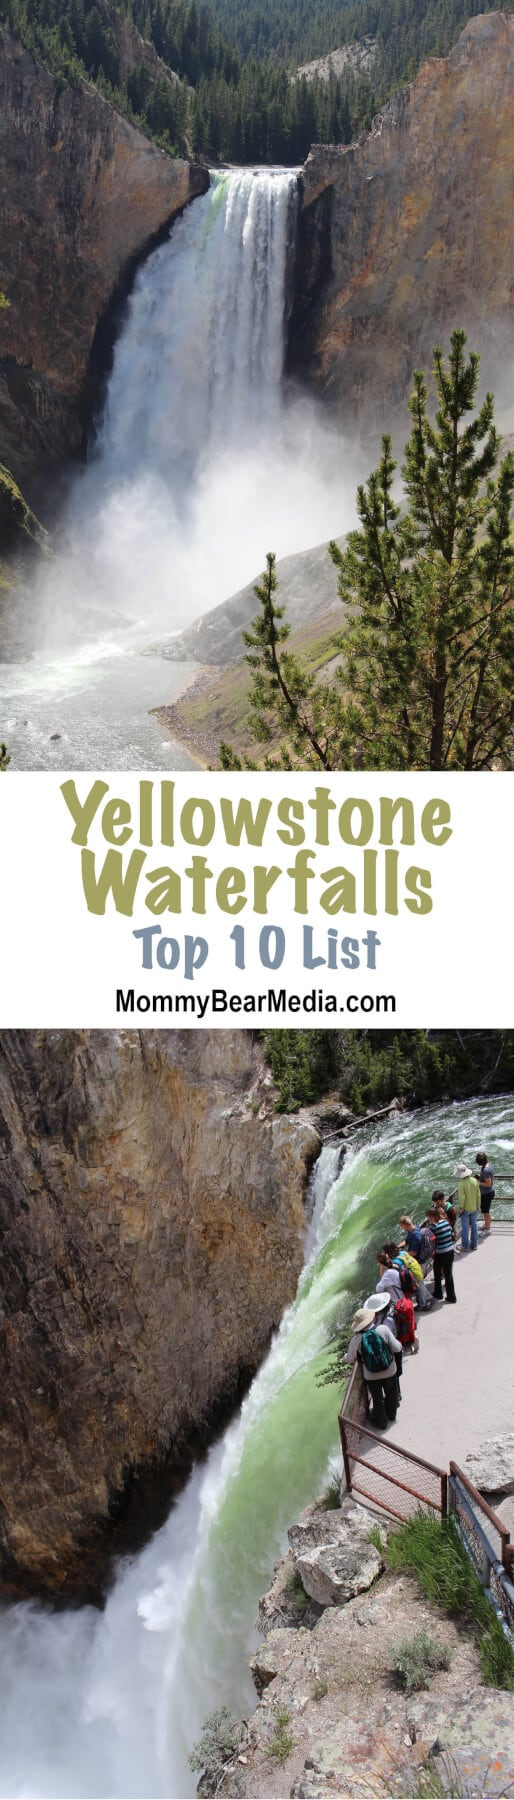 I love this list of the best views of Yellowstone waterfalls because it has several lesser-known places to look at the waterfalls and some waterfalls I haven't heard of. I'm pinning it now so I have it for the next time we go to Yellowstone.